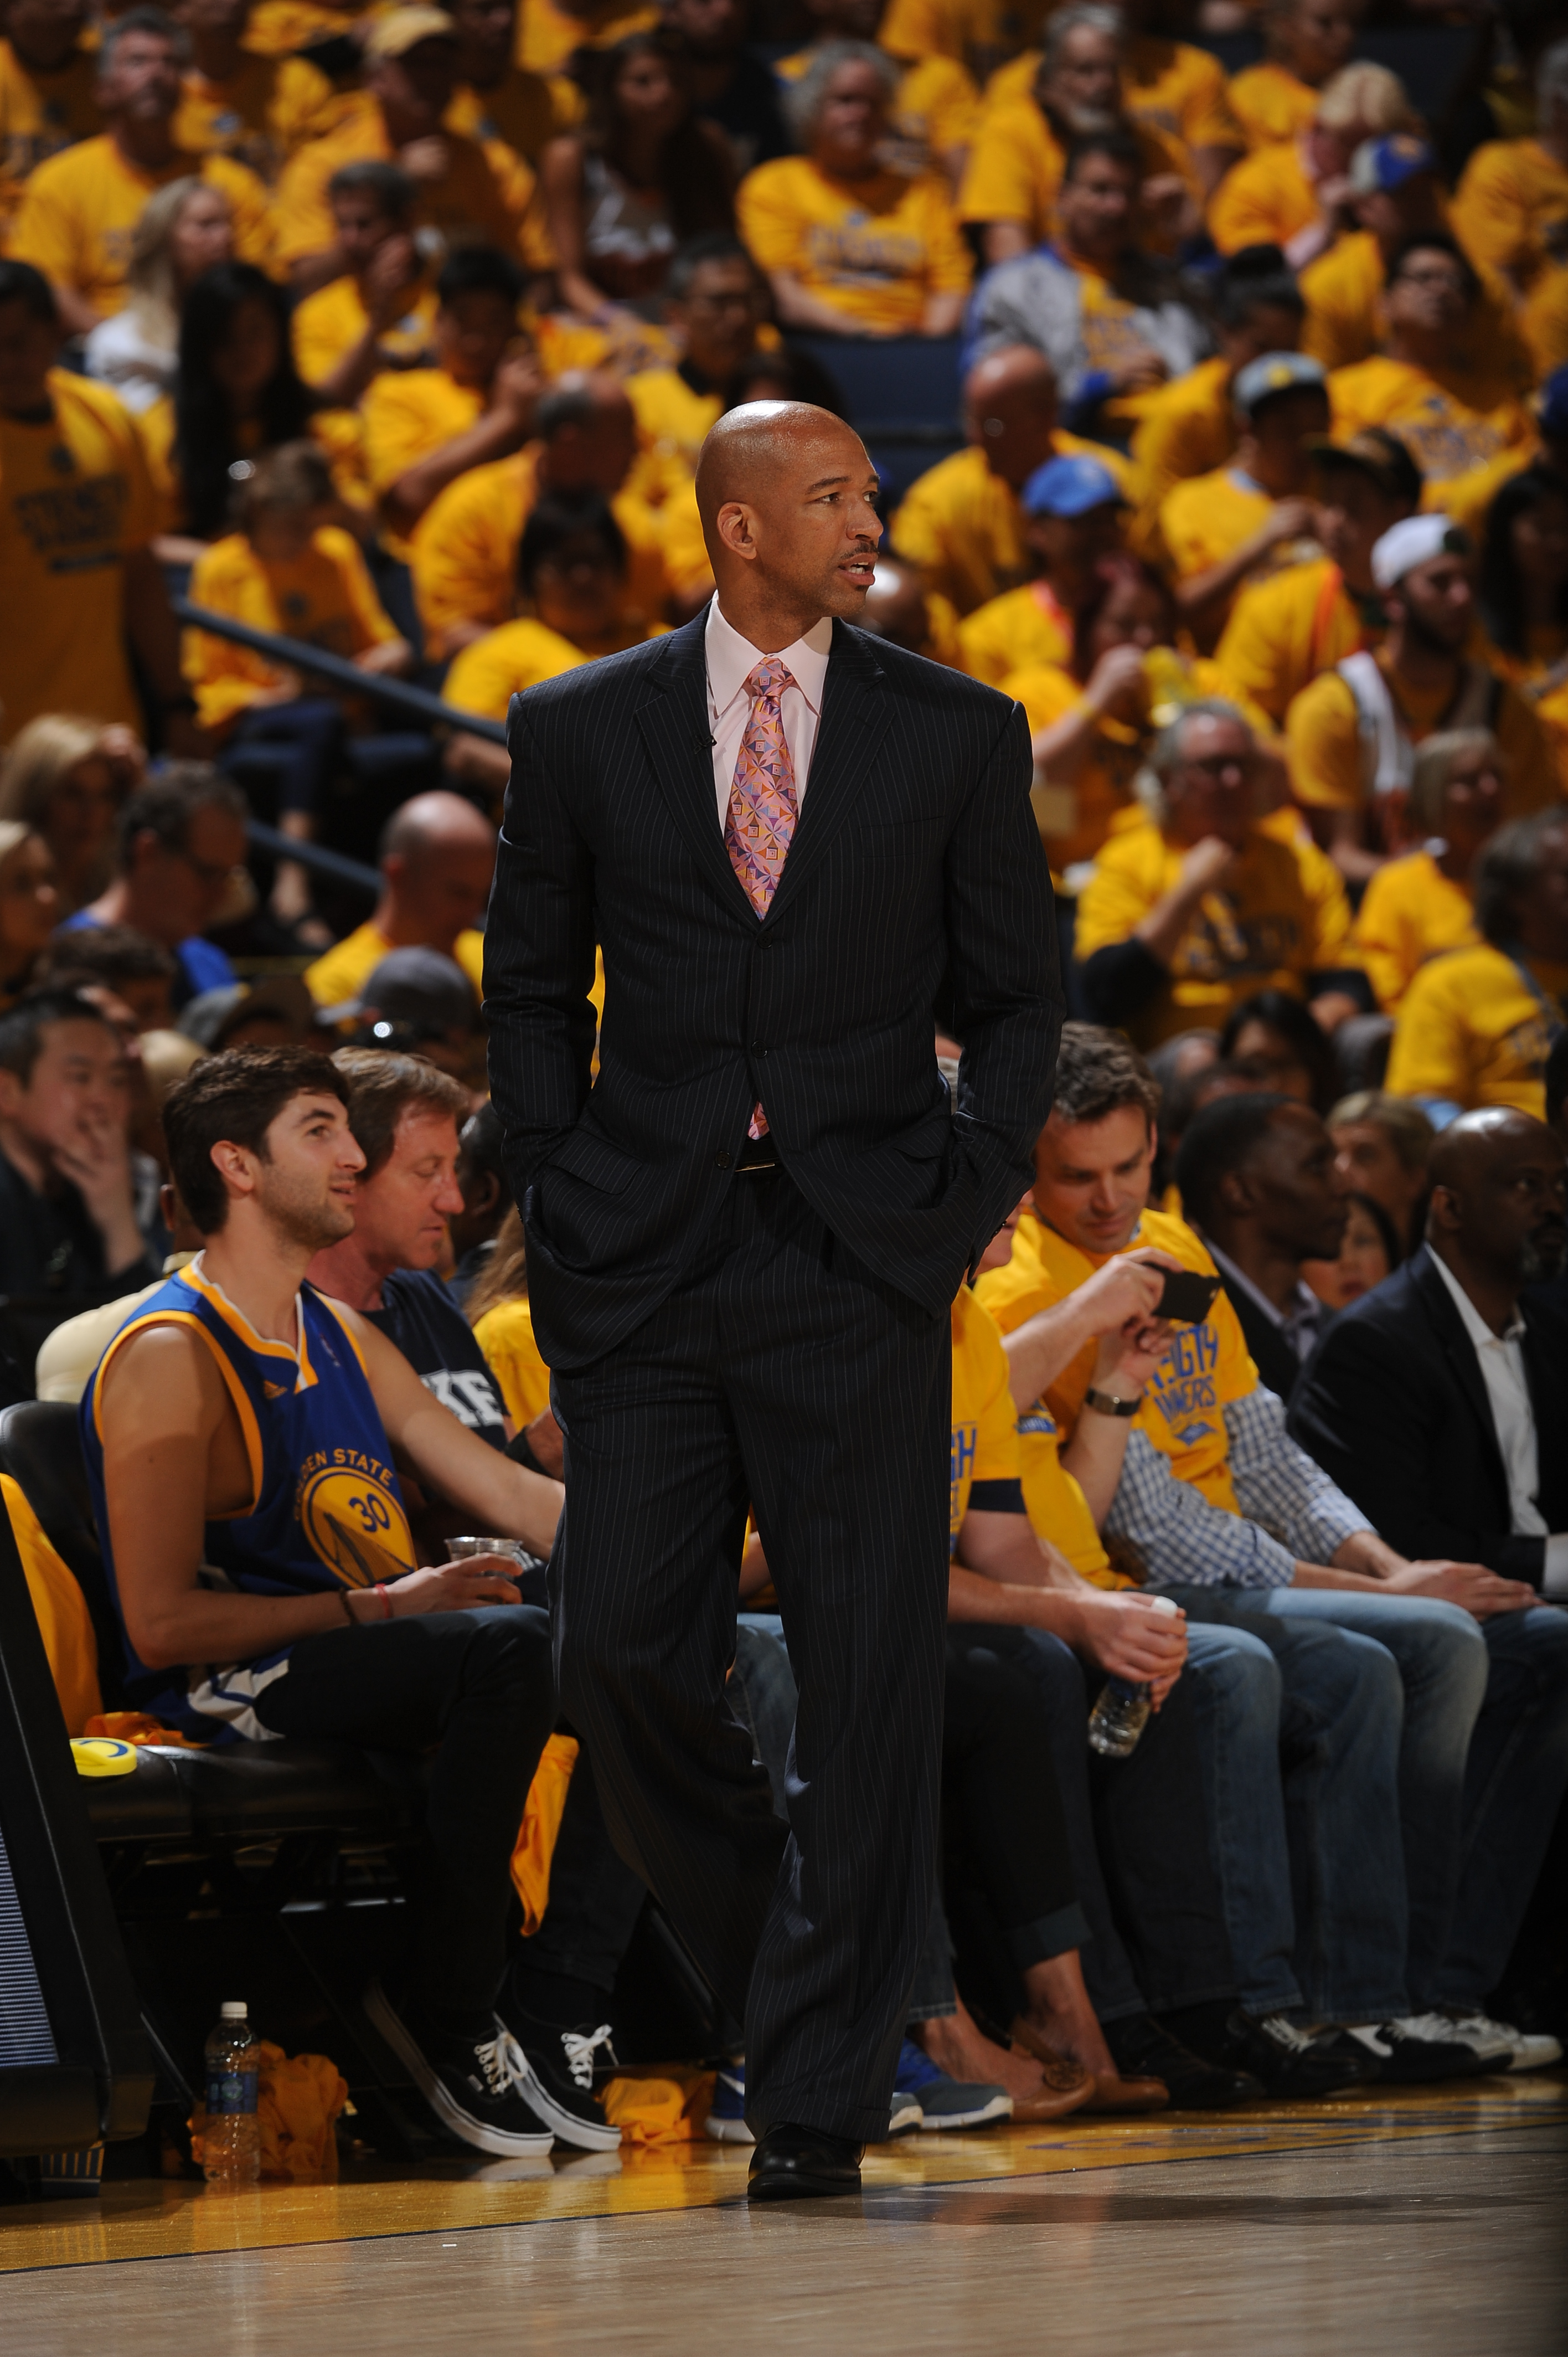 OAKLAND, CA - APRIL 18: Head coach, Monty Williams of the New Orleans Pelicans during Game One of the Western Conference Quarterfinals against the Golden State Warriors during the NBA Playoffs on April 18, 2015 at Oracle Arena in Oakland, California. (Pho